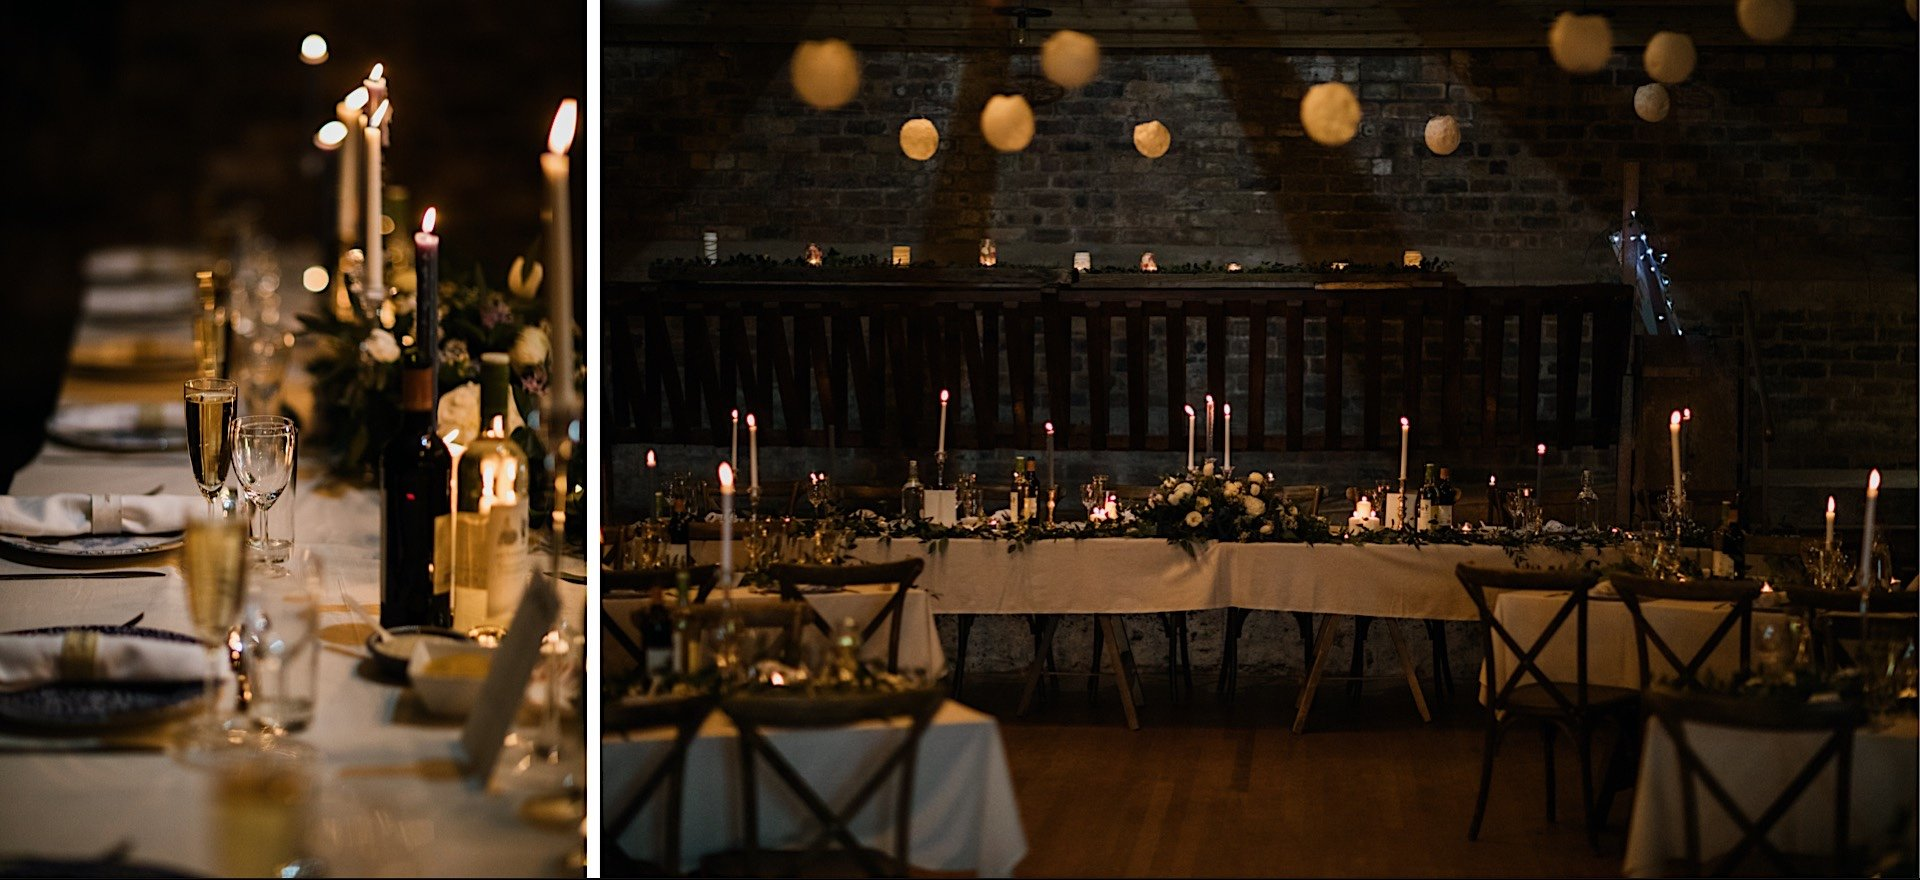 champagne meal for Rhynd setup by closeup candlelight set of table flutes at the Wedding view top